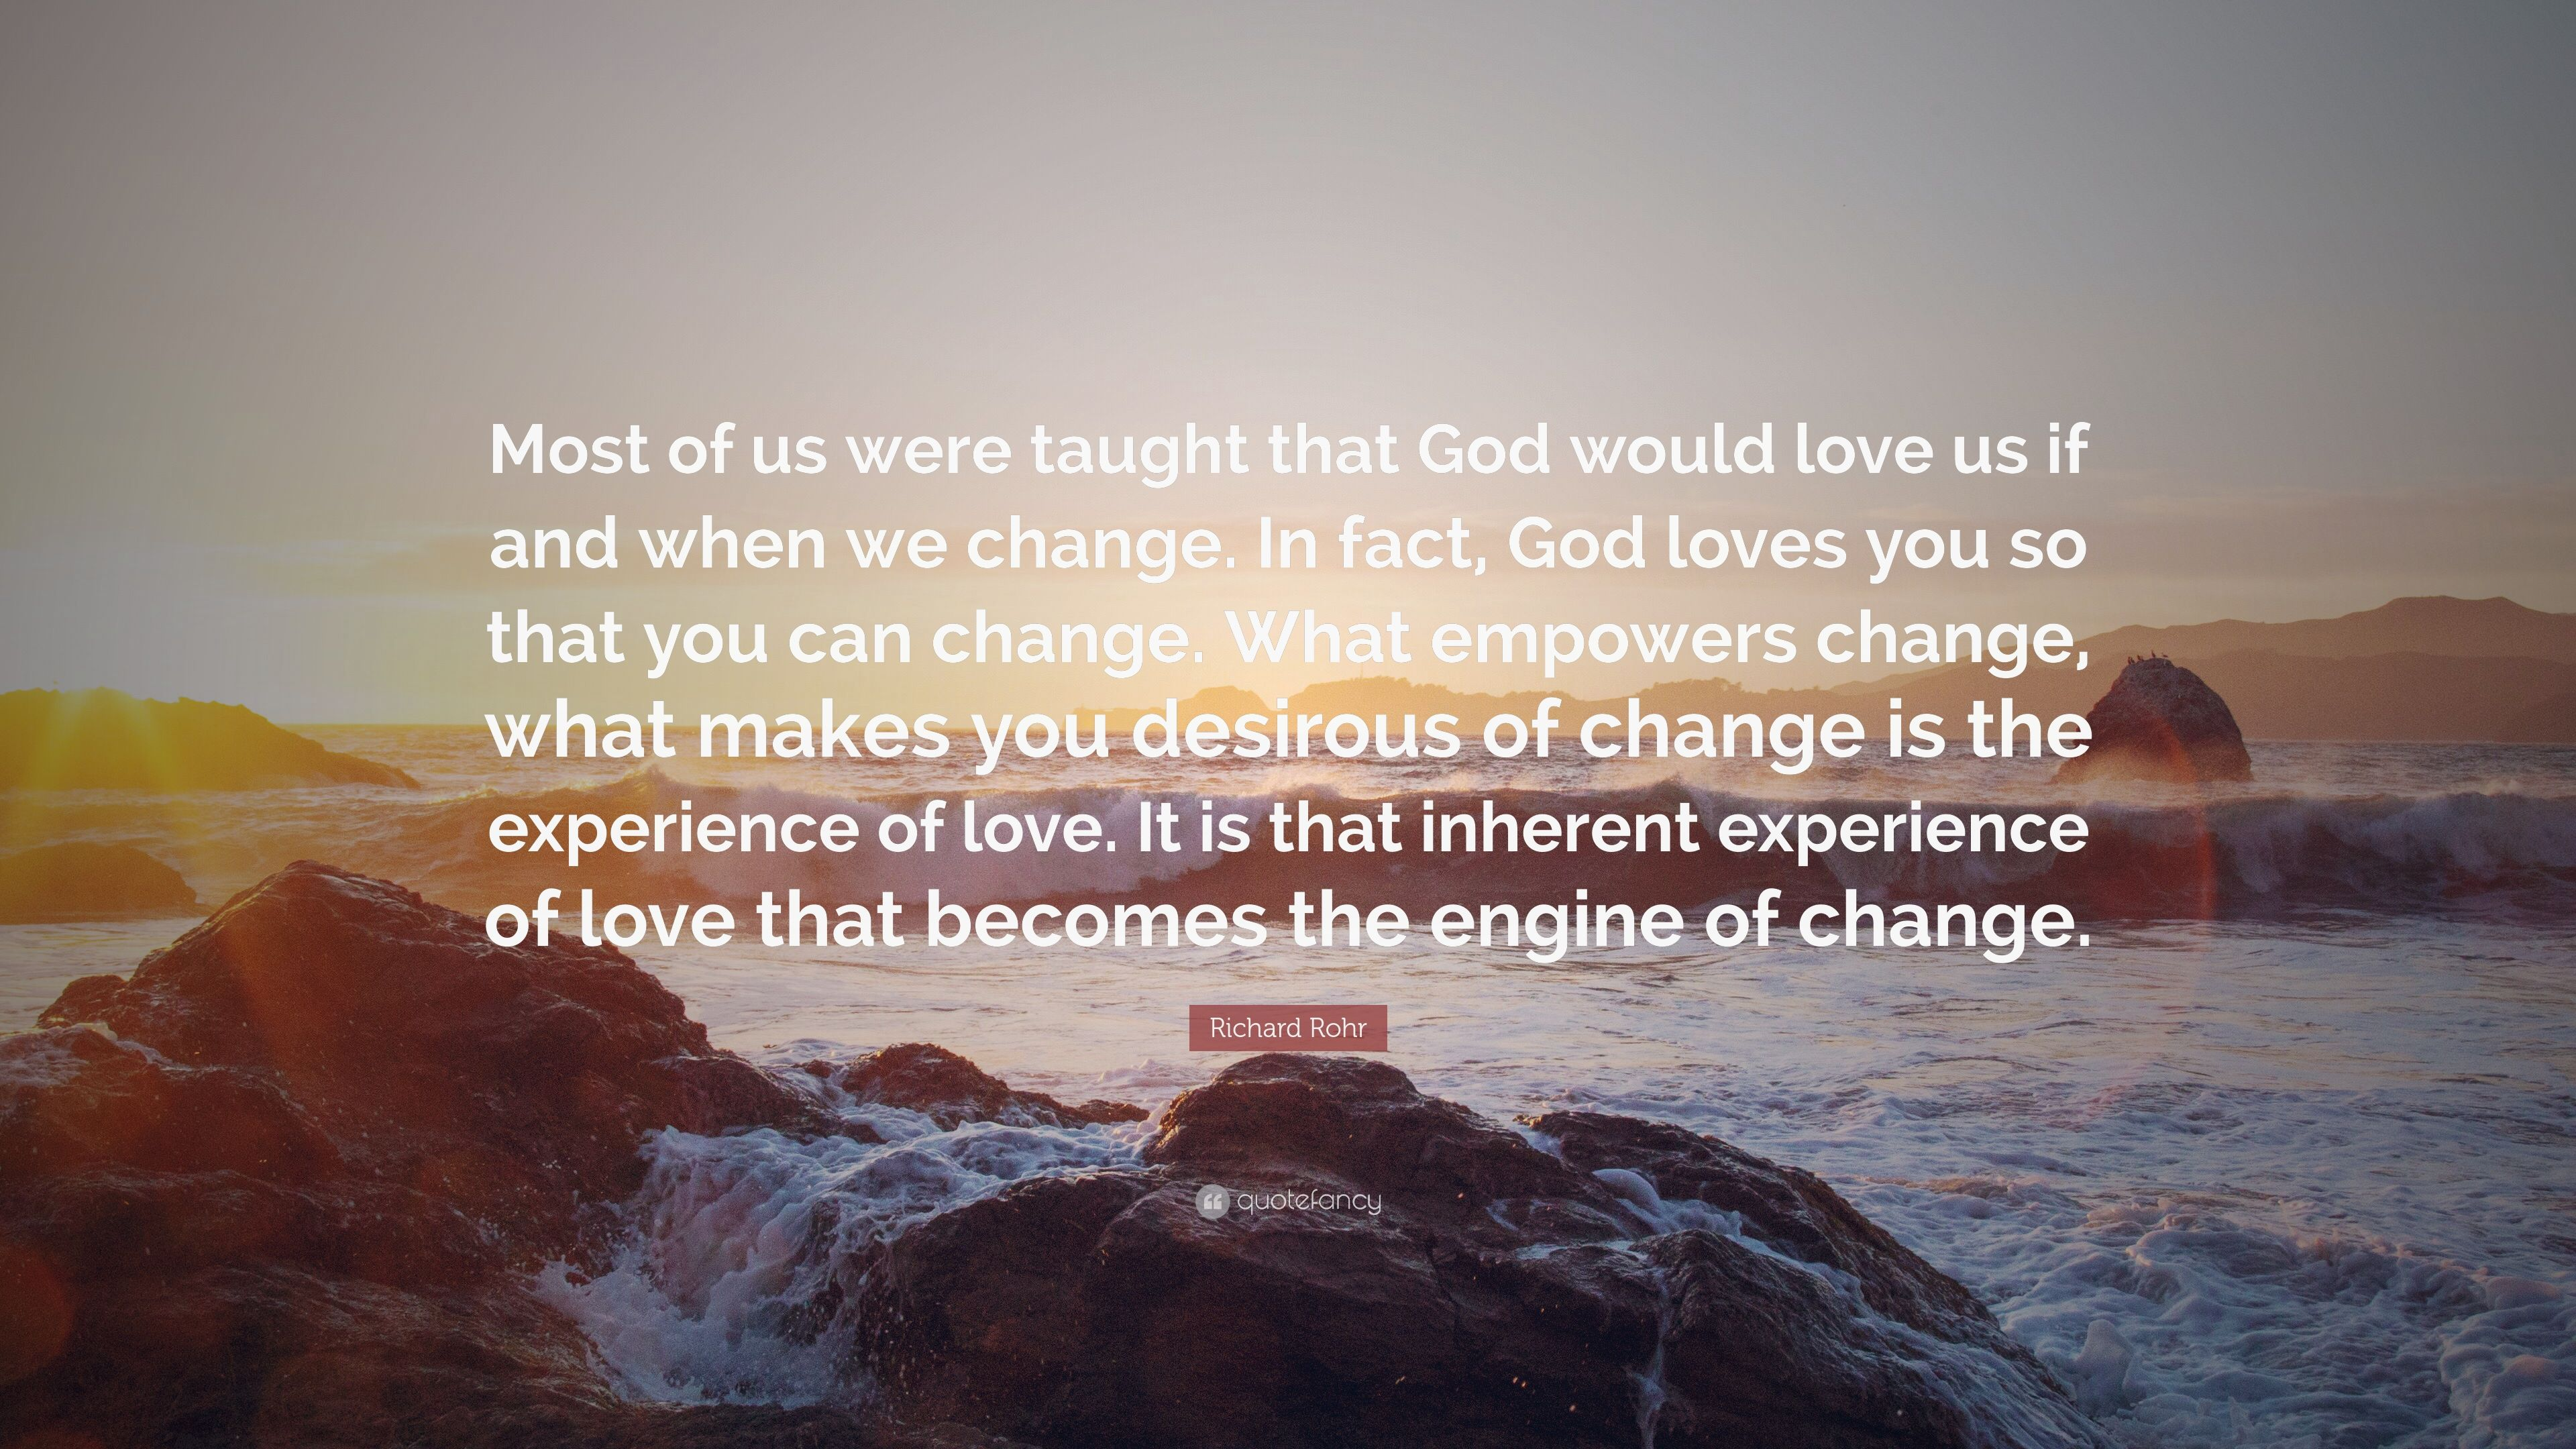 "Richard Rohr Quote ""Most of us were taught that God would love us if"